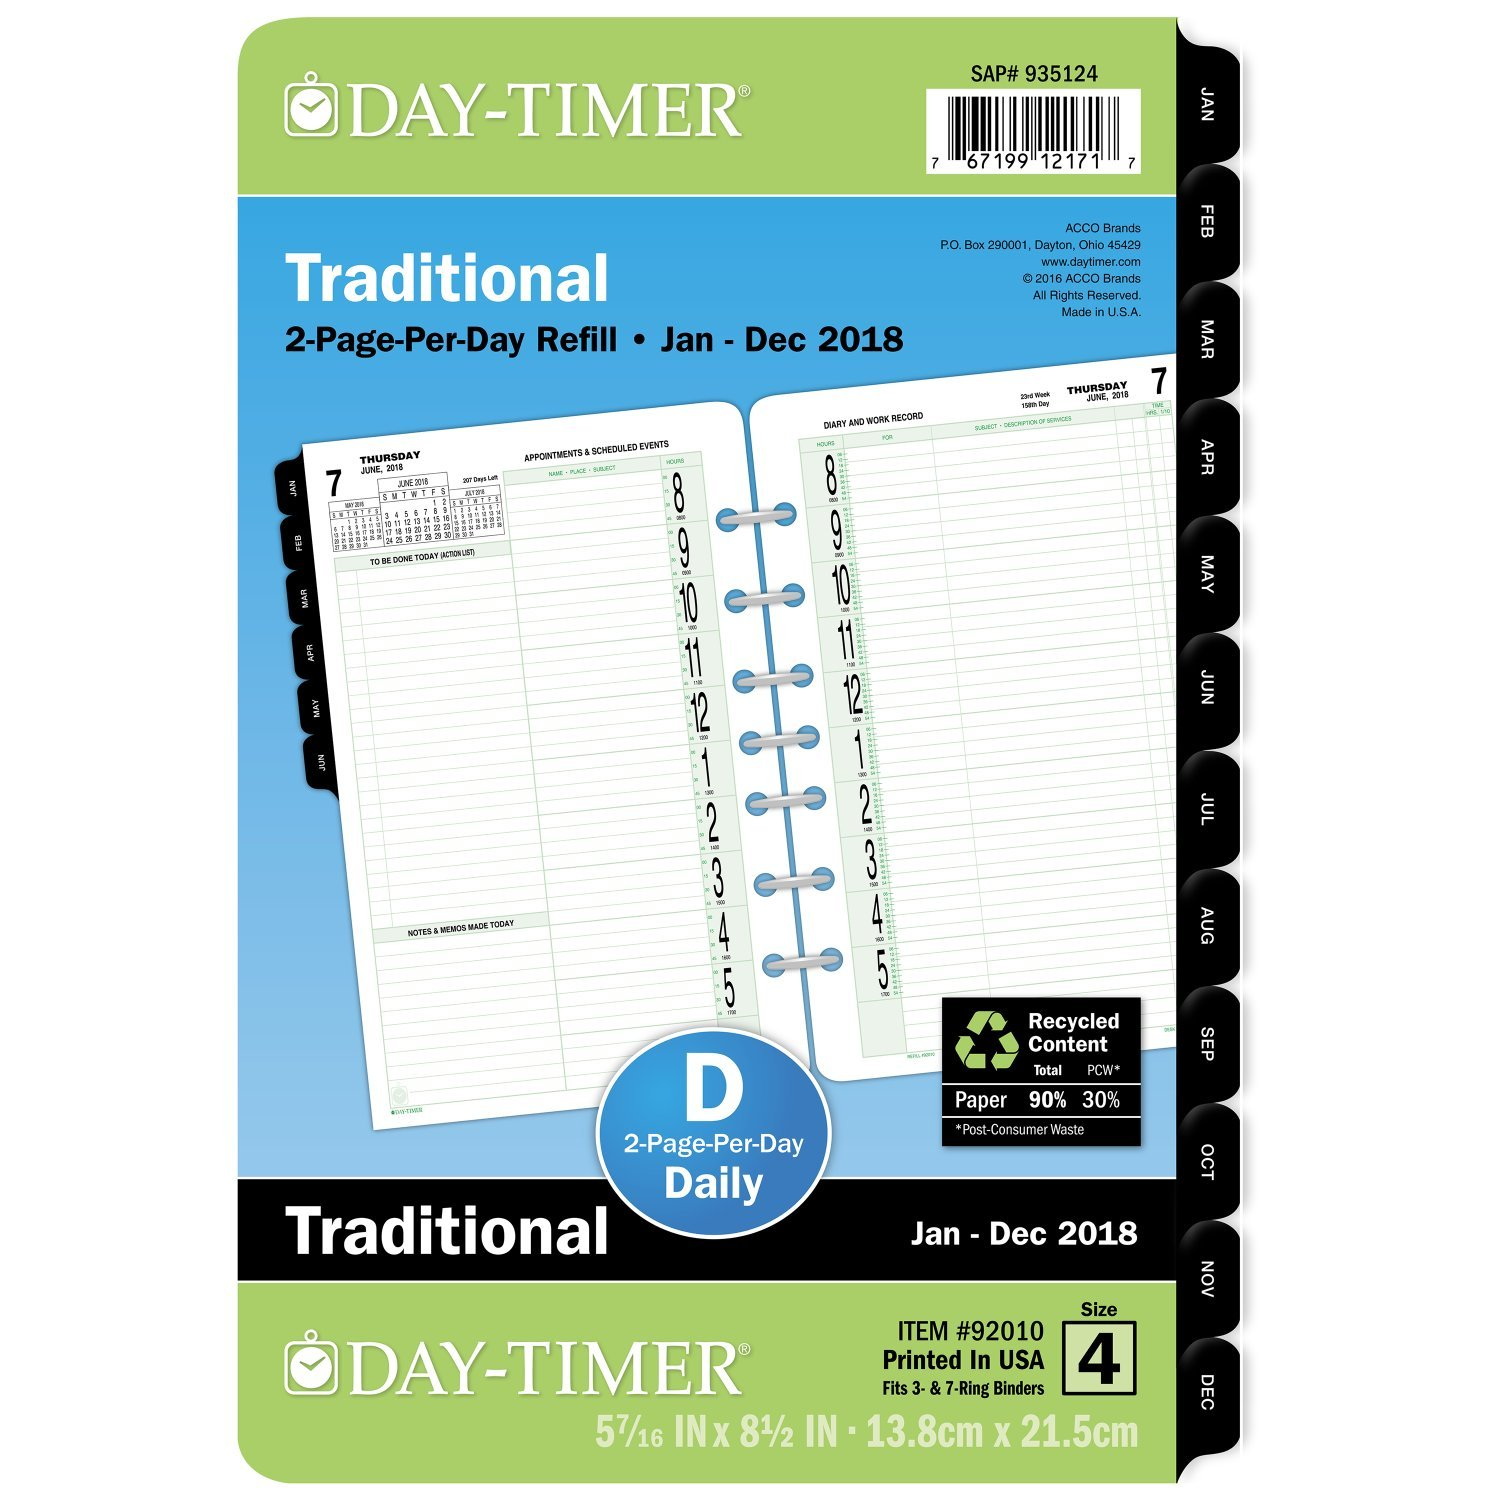 Day-Timer Planner Refill, Two Page Per Day, January - December 2018, 5-7/16'' x 8-1/2'', Desk Size (92010) by Day-Timer